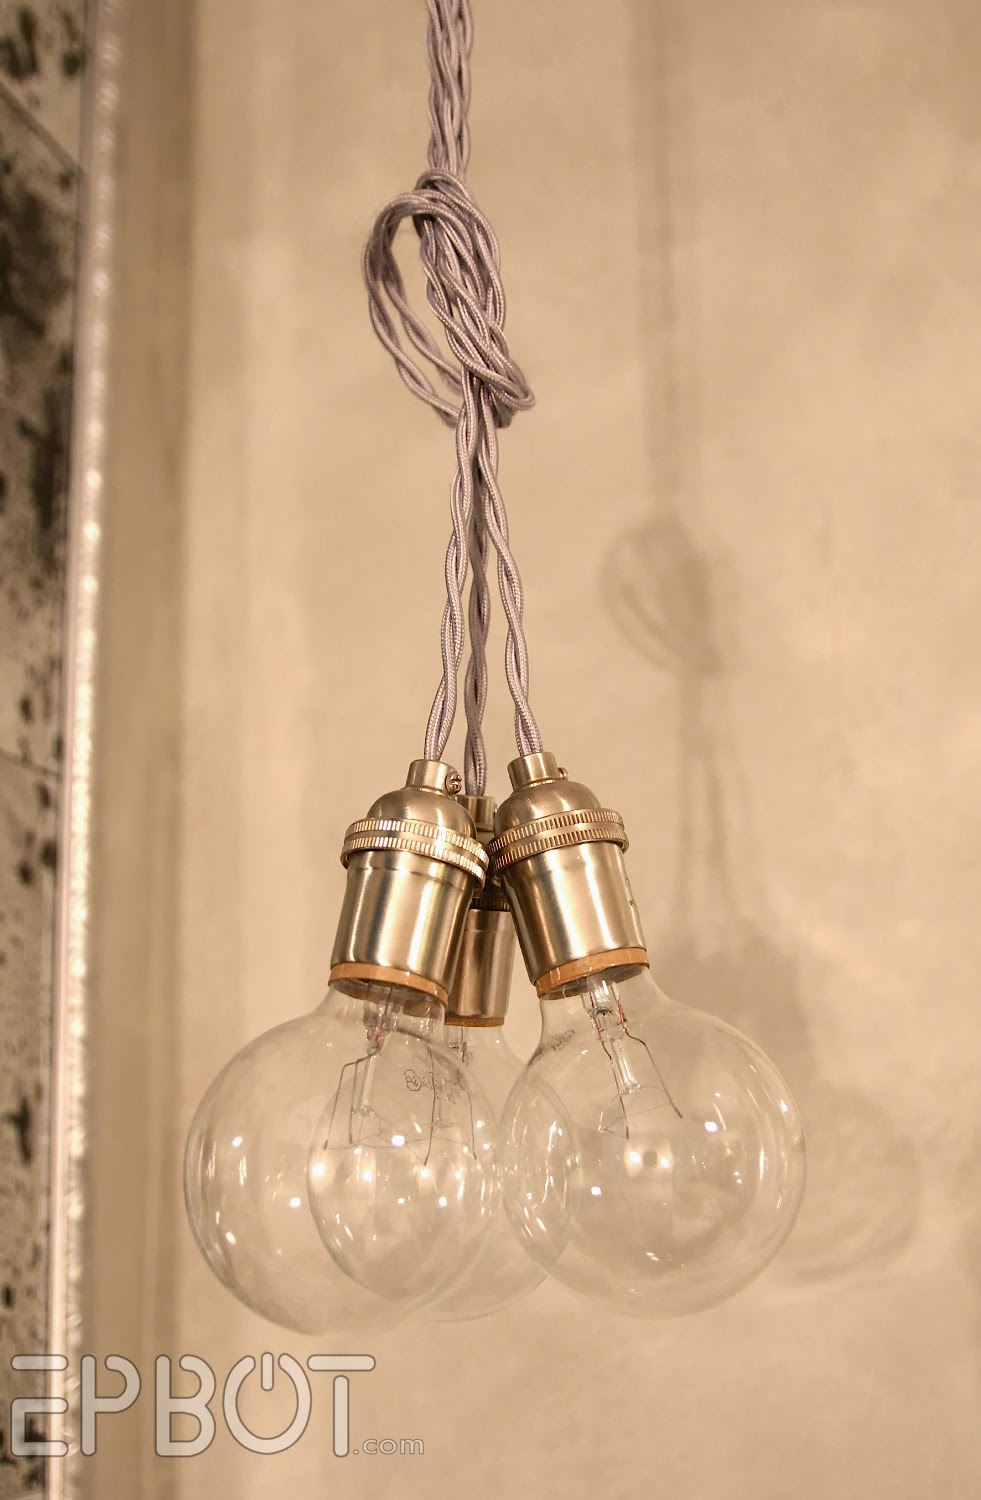 Bare Bulb Hanging Pendant Lights 2 Wire Your Own Pendant Lighting - Cheap, Easy, u0026 Fun!